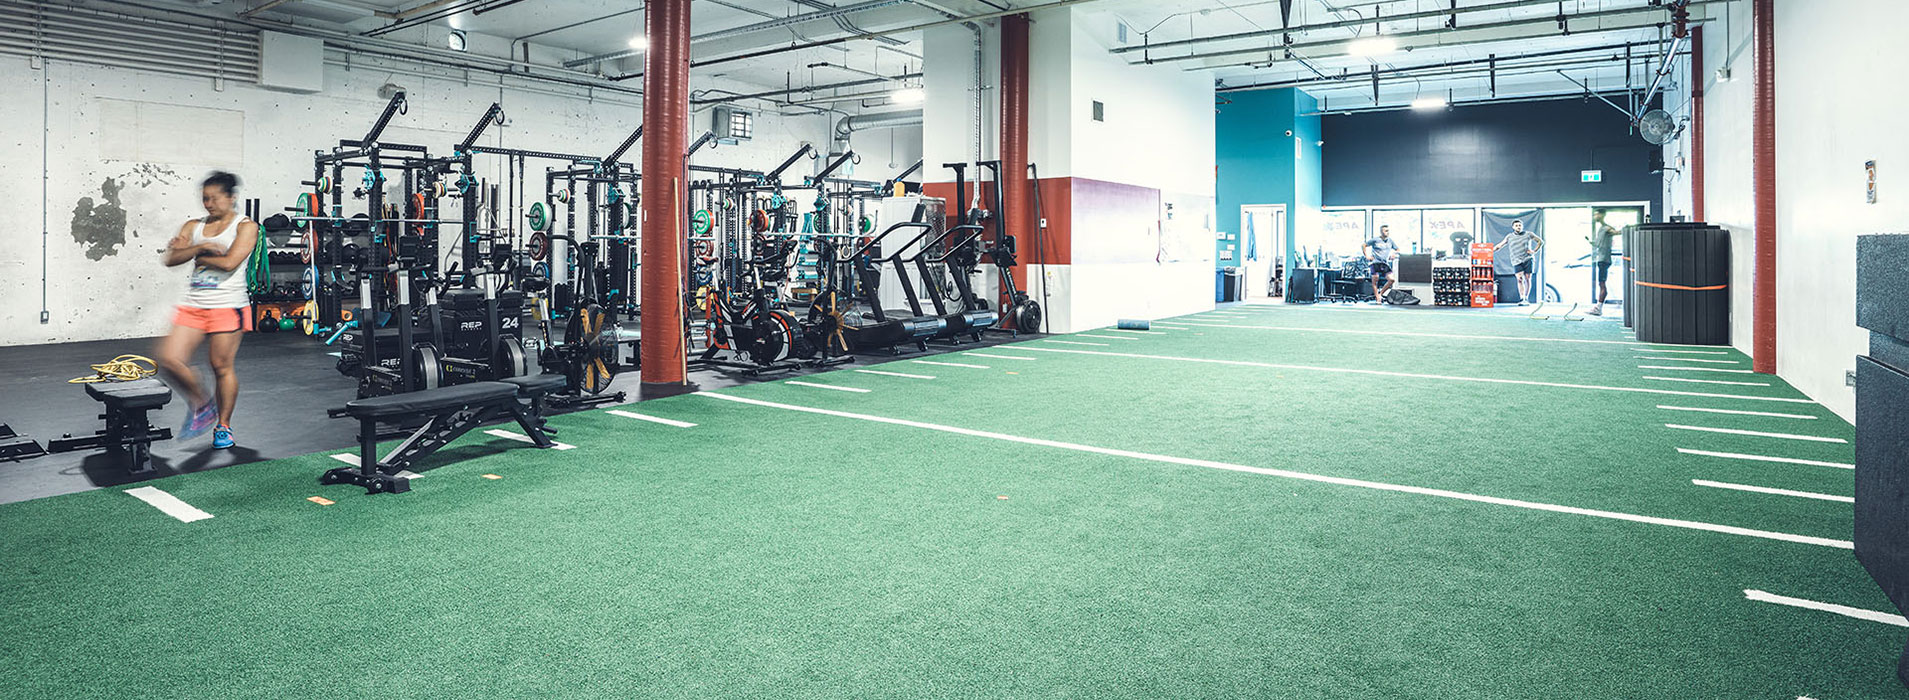 Speed Mechanics Facility Turf area for sprinting and sports training